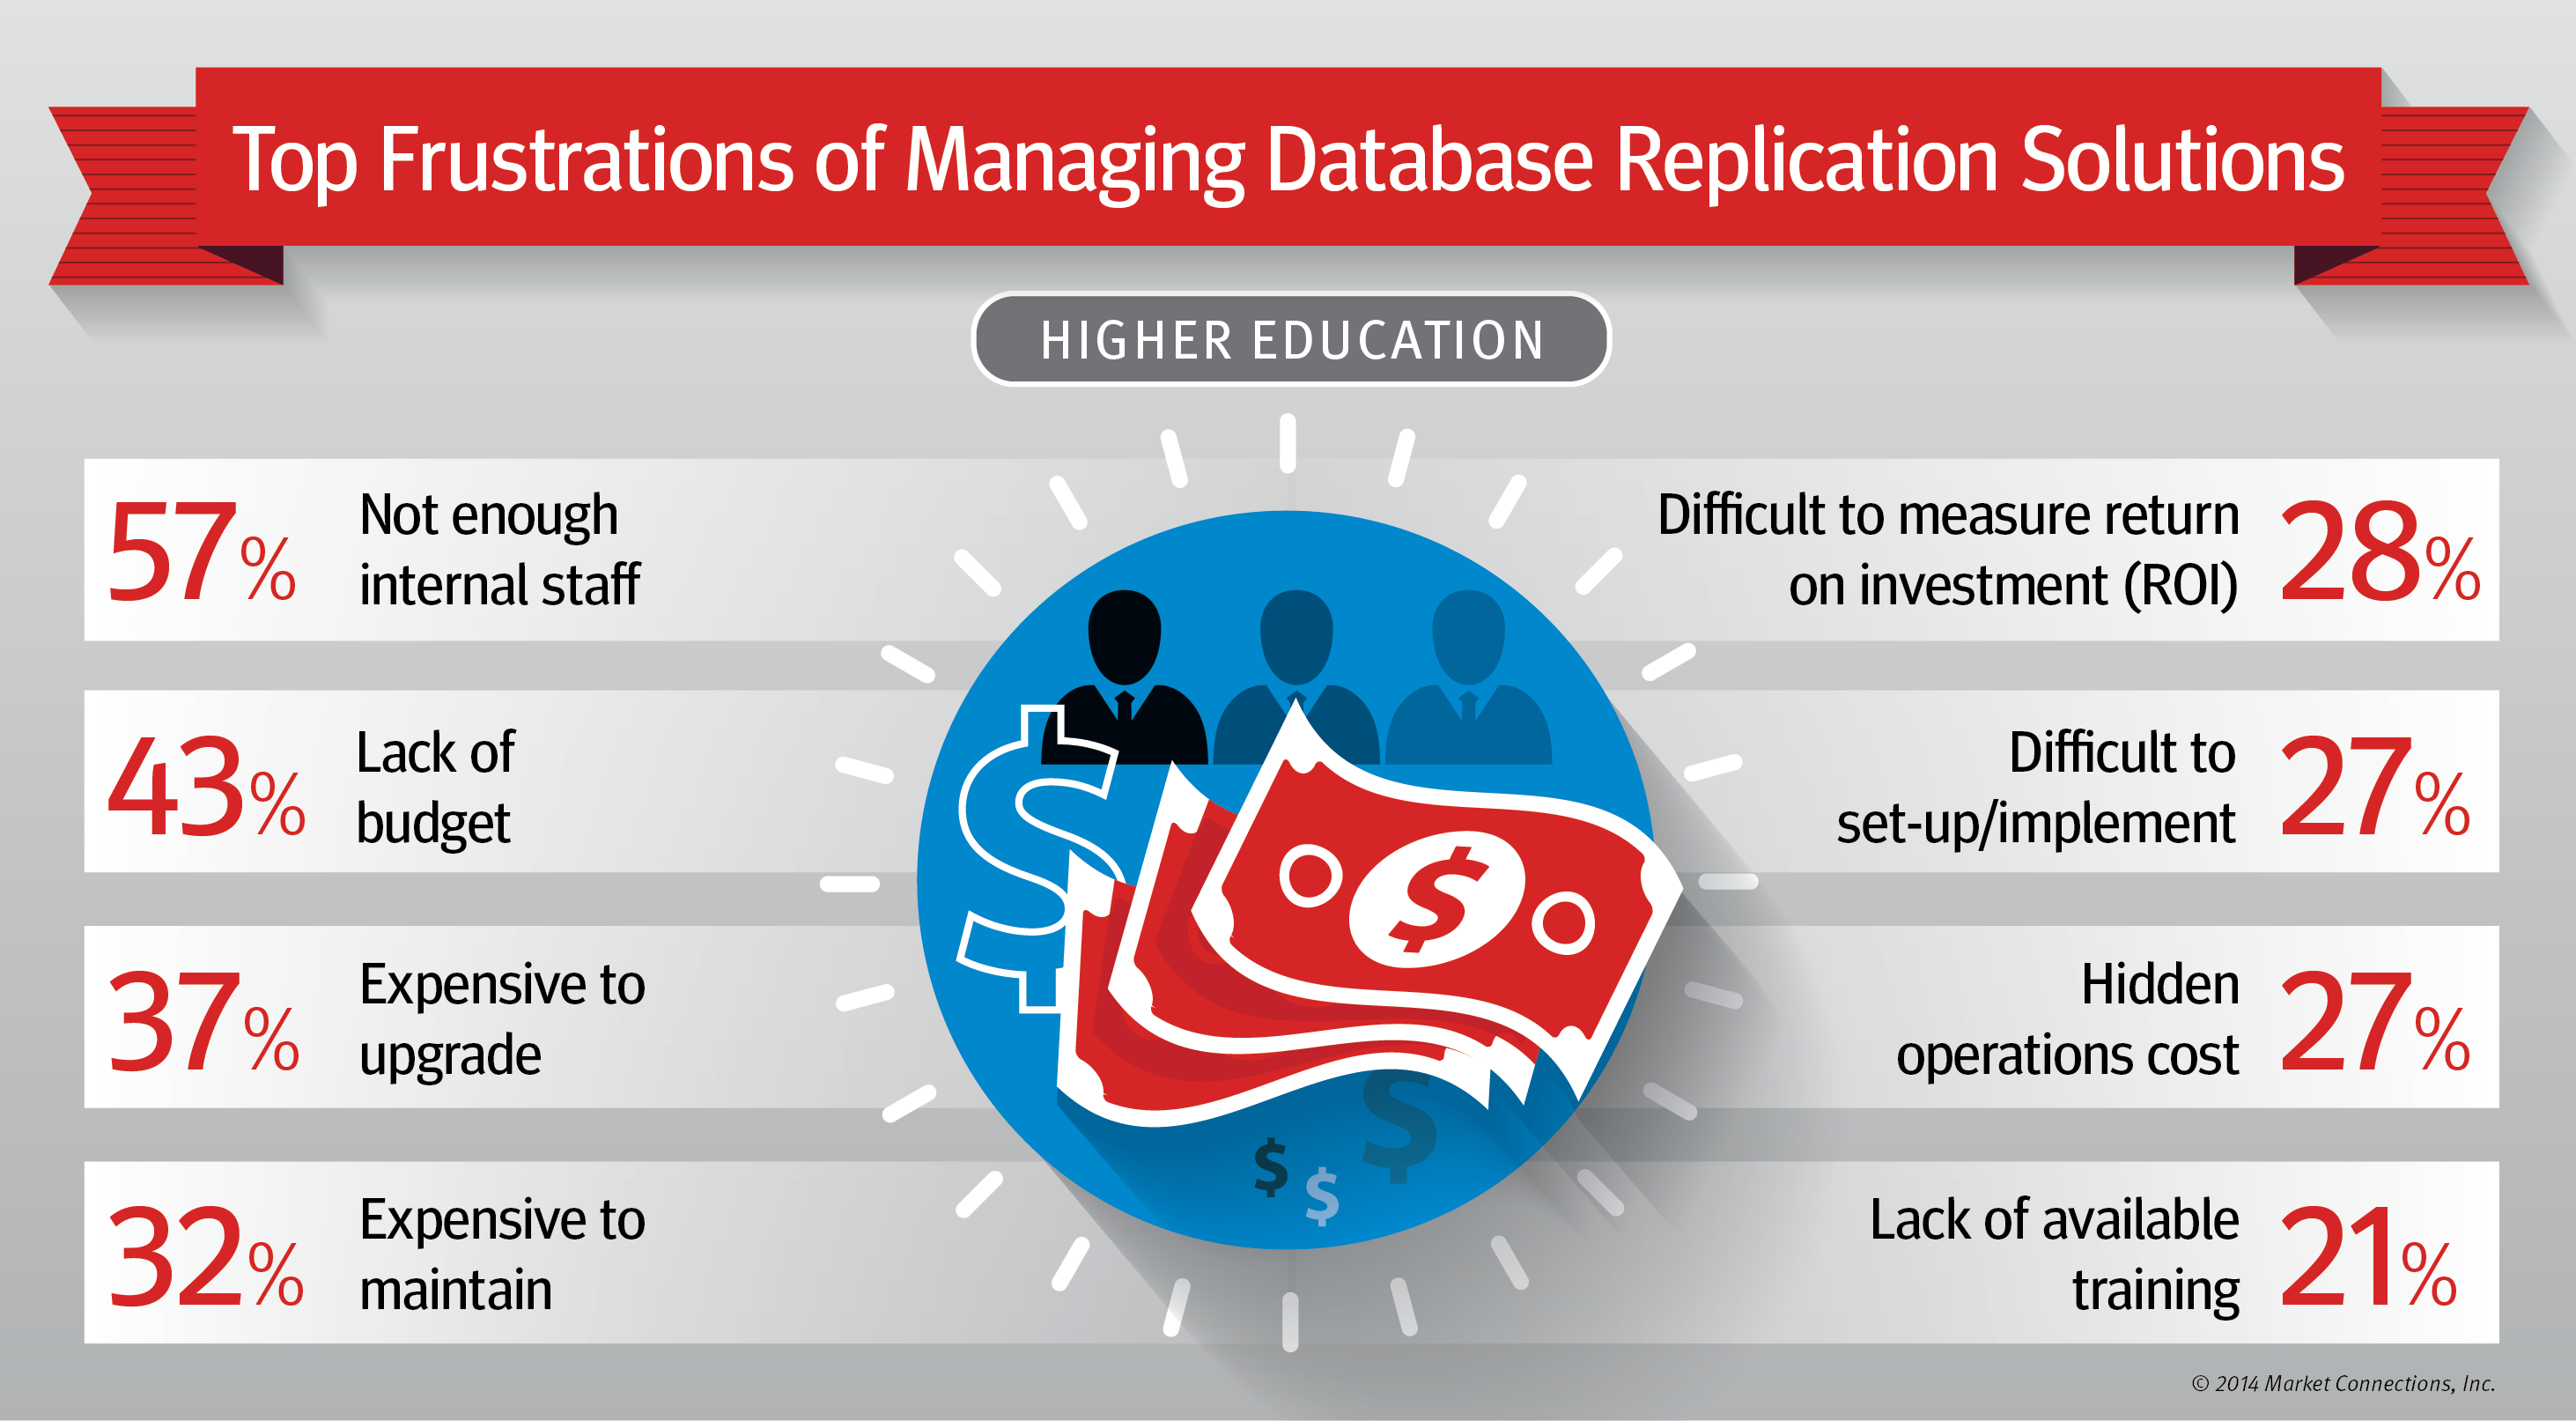 Data Replication and Integration Tools: <br /><em>Reducing Risk & Improving Reliability for Higher Education Data</em>